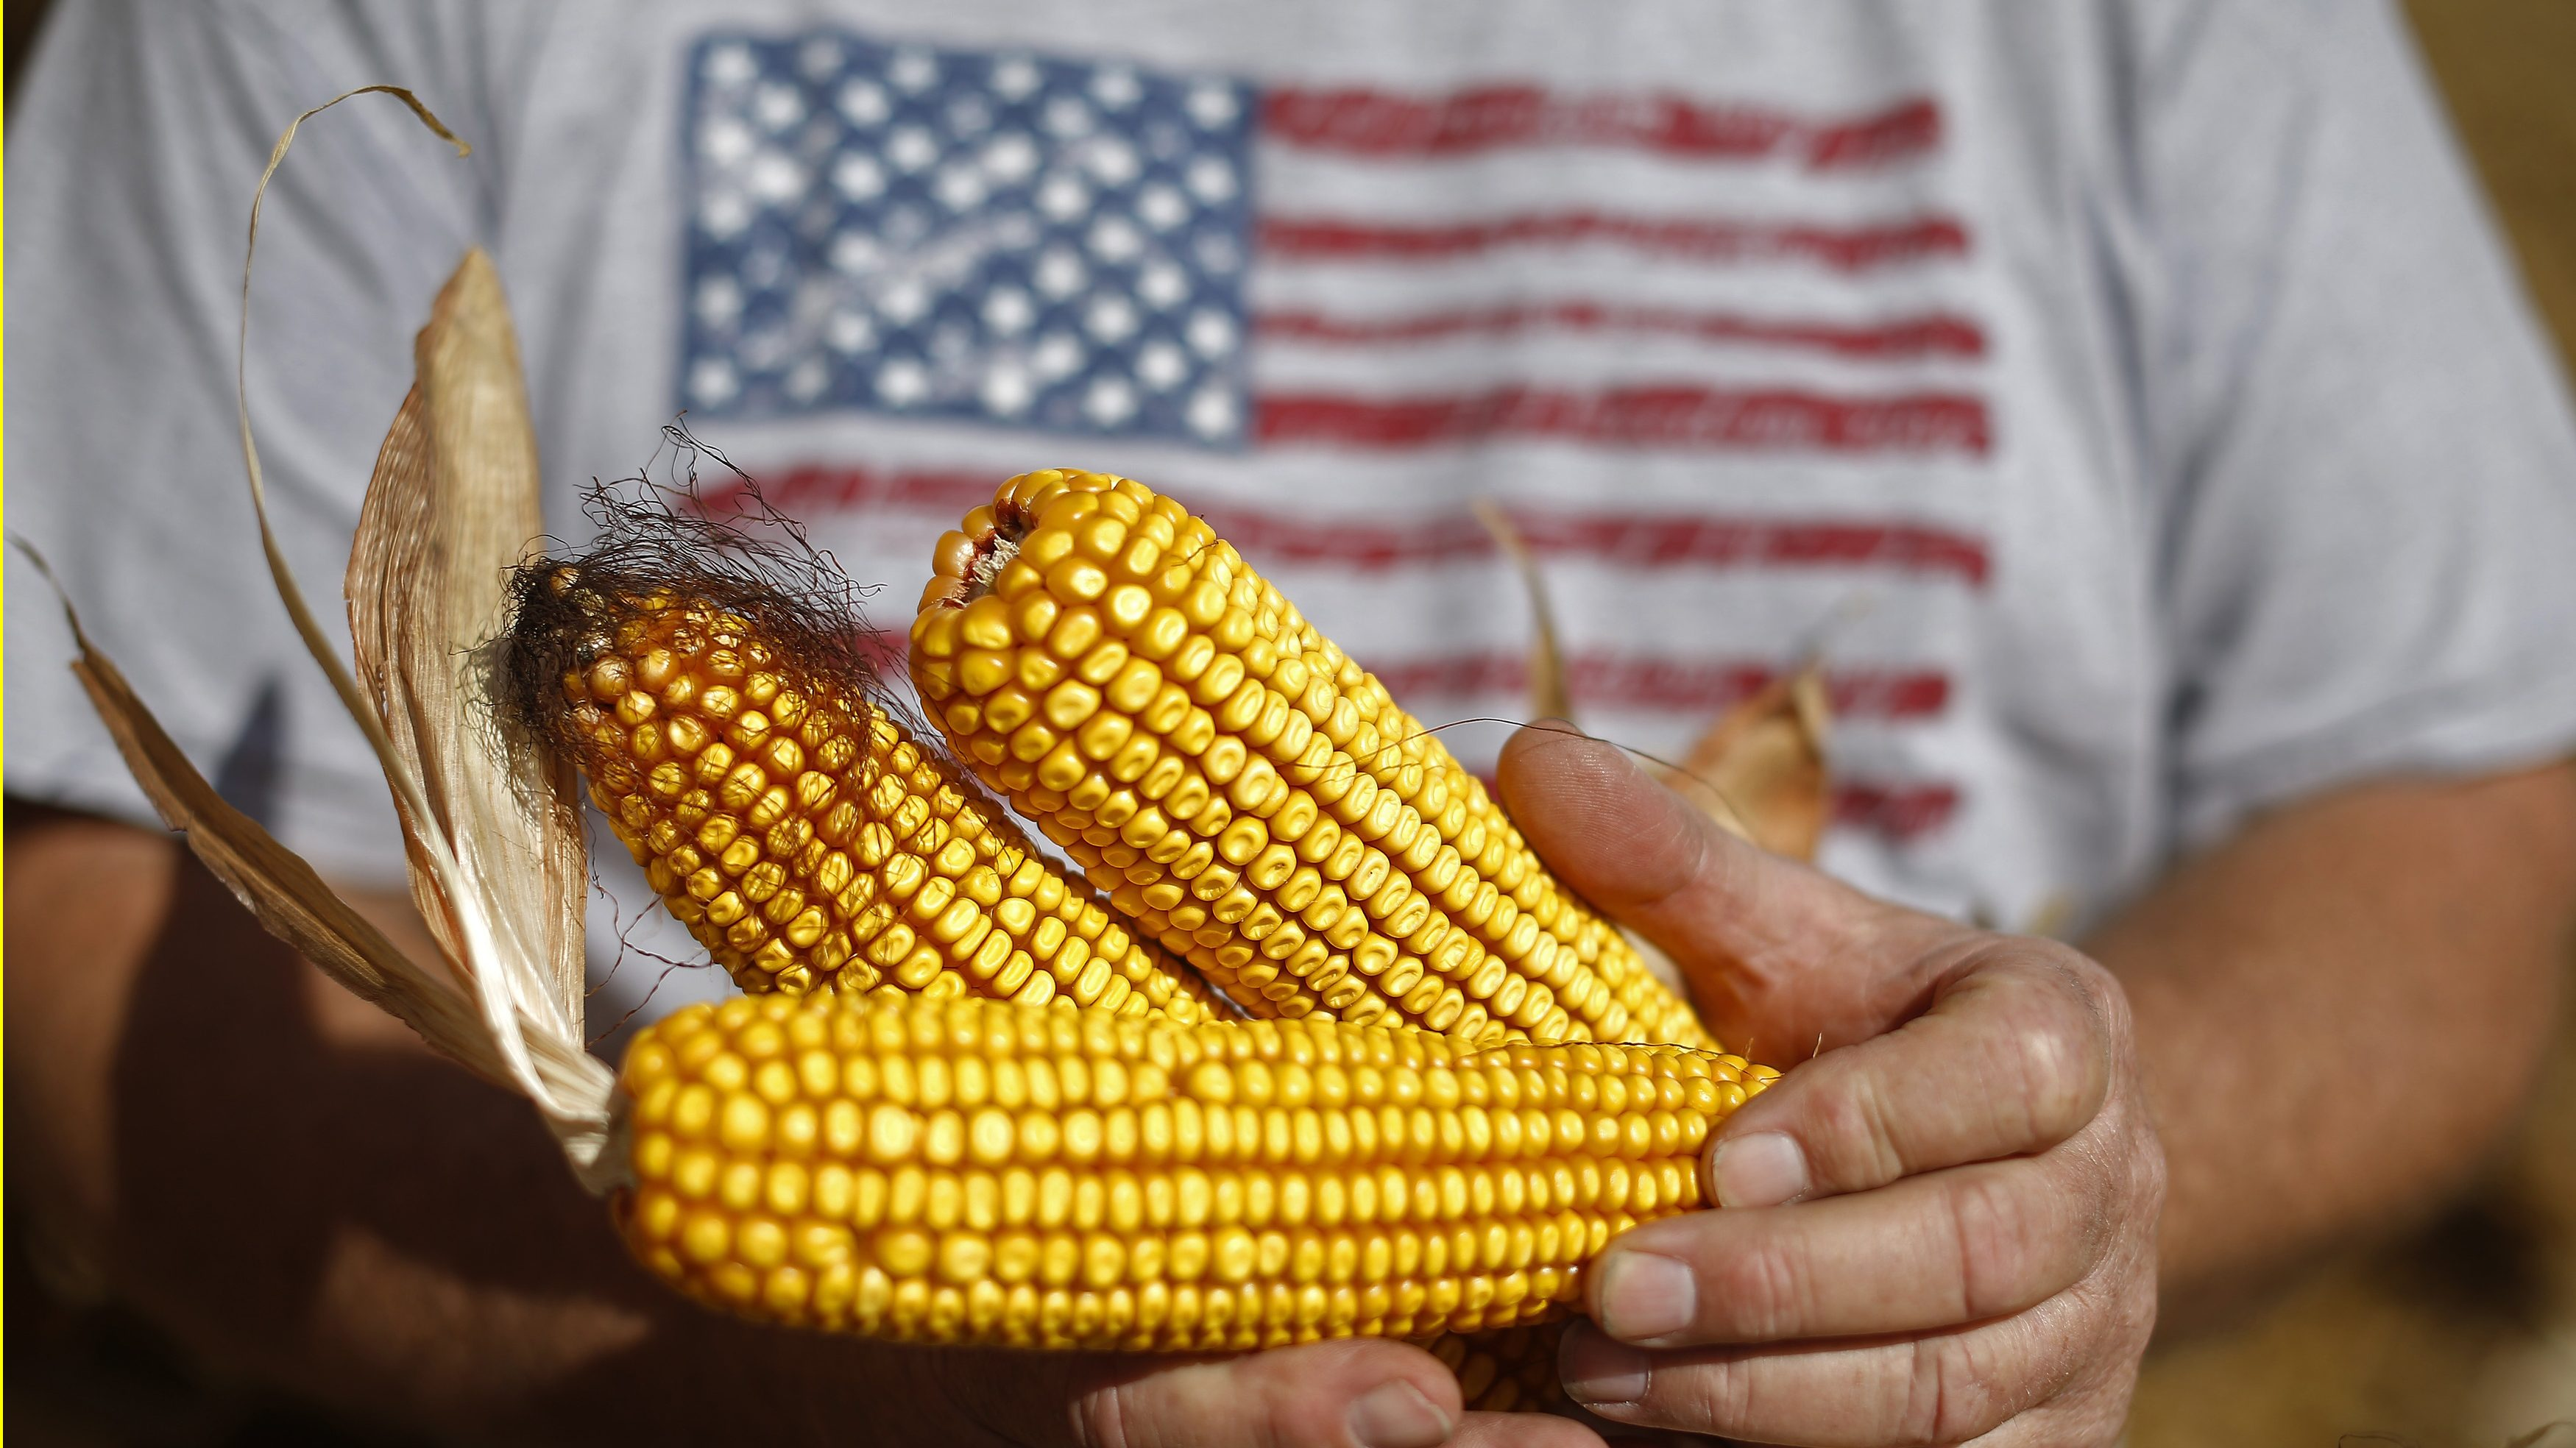 Farmer Dan Roberts holds cobs of corn during the harvest in Minooka, Illinois, September 24, 2014.  Spot basis bids for corn and soybeans were lower at processors and elevators amid slow farmers sales around the U.S. Midwest on Wednesday, dealers said.